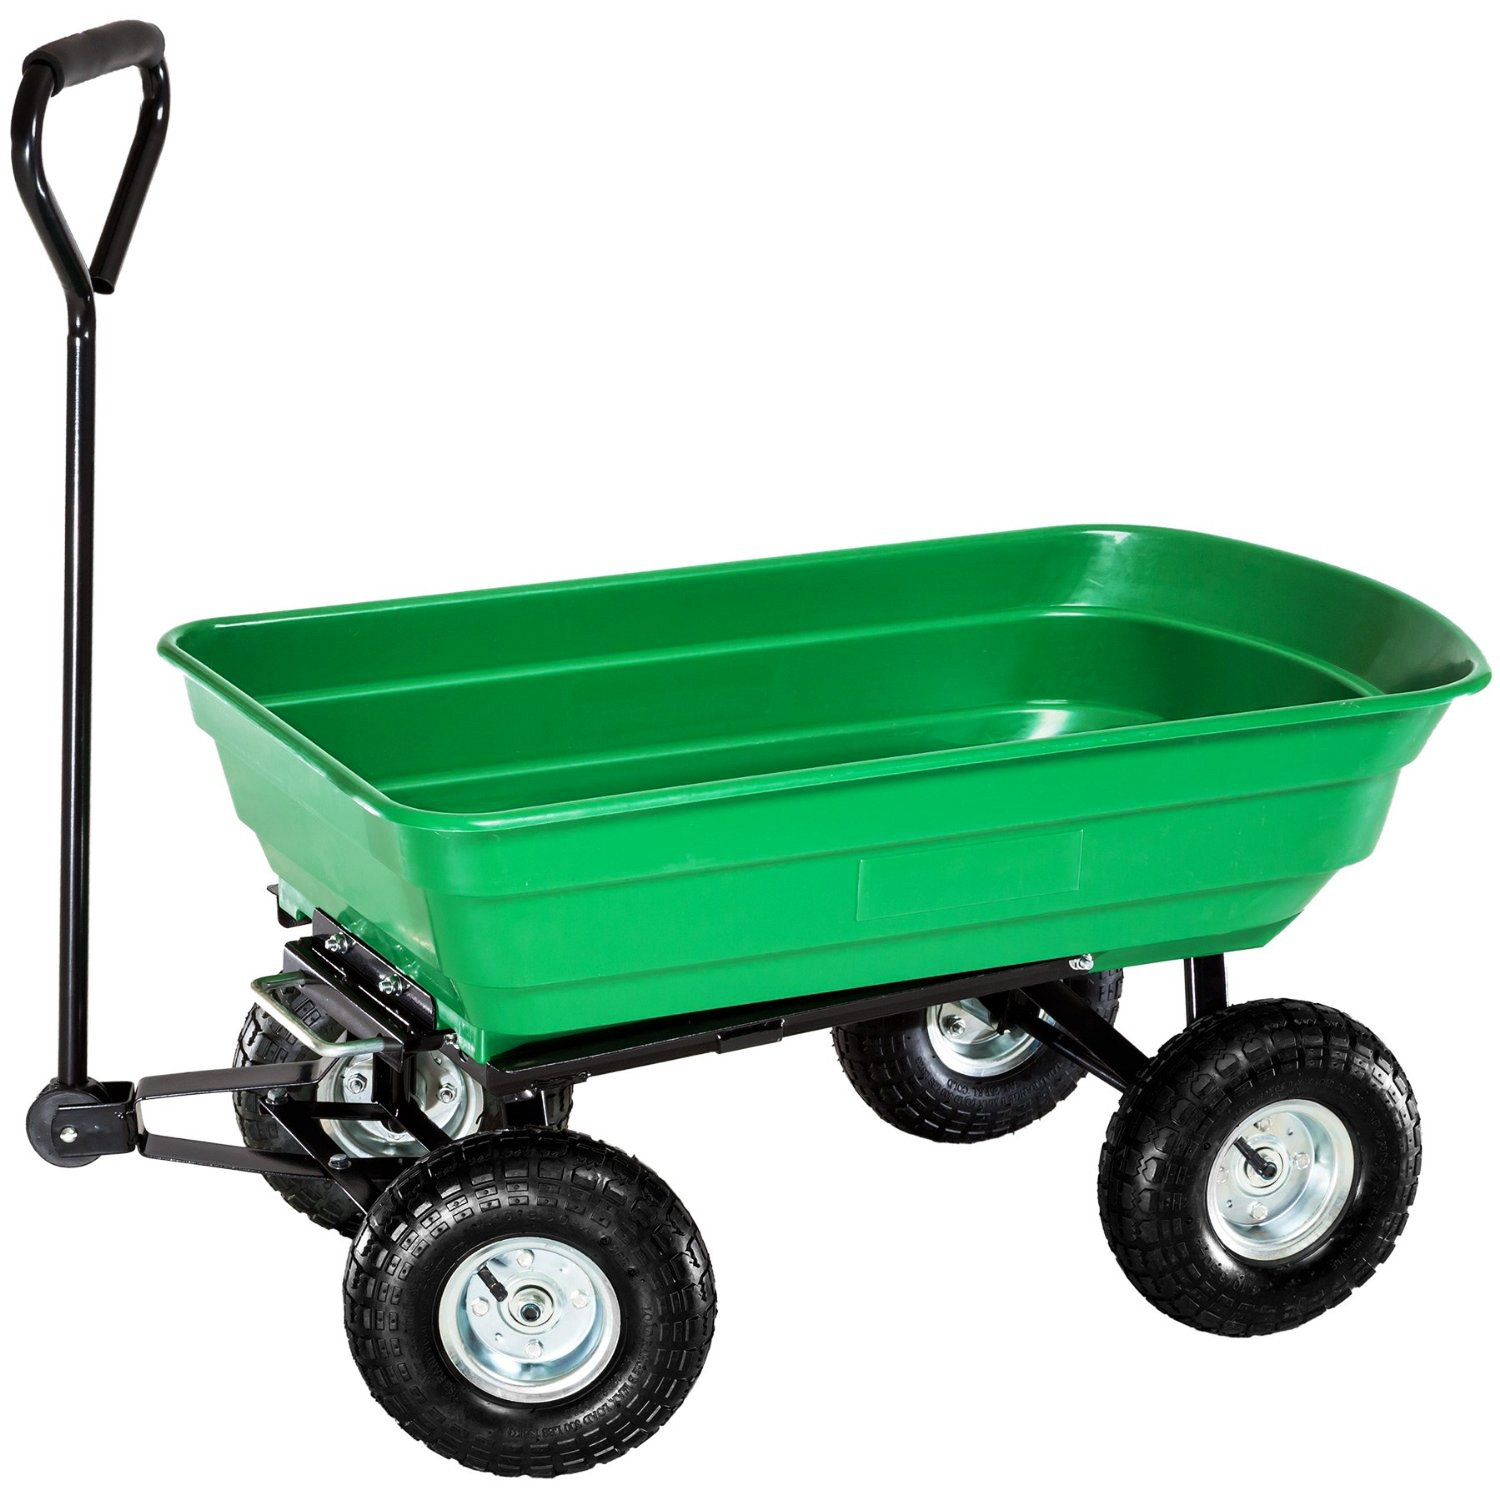 Heavy duty green garden cart with tipping barrow trolley for Brouette de jardin 4 roues